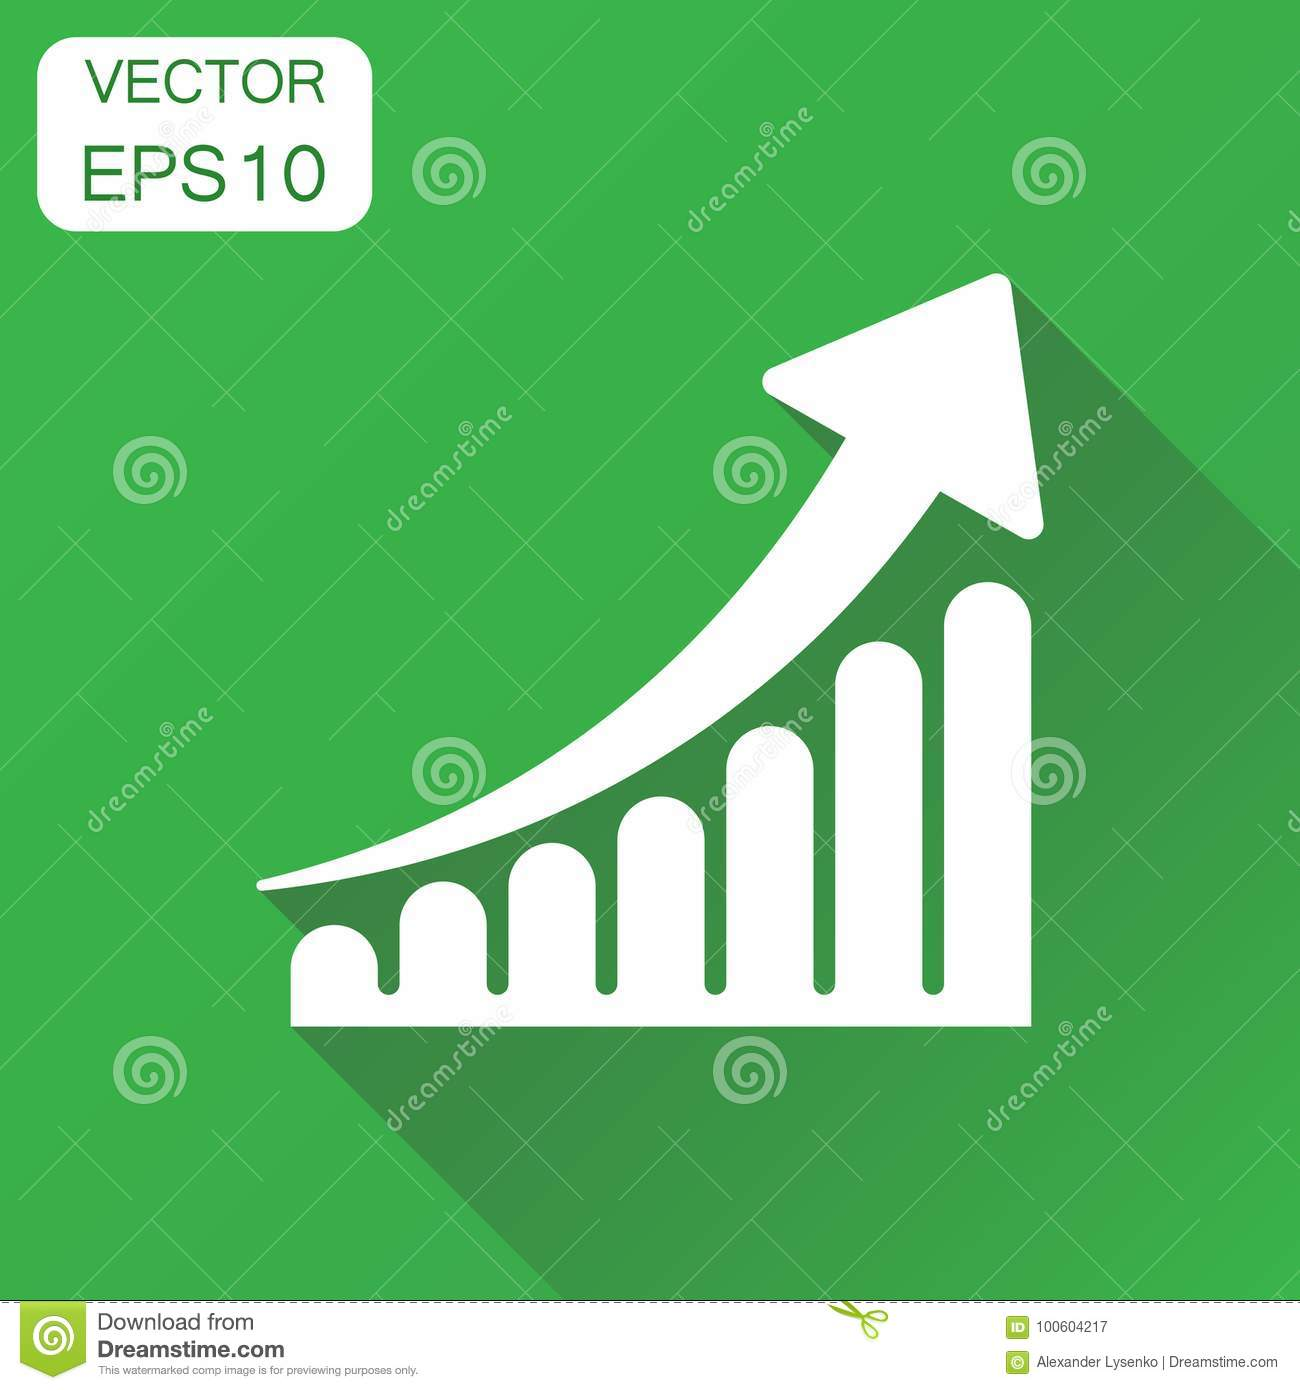 Growth chart icon business concept grow diagram pictogram vect download growth chart icon business concept grow diagram pictogram vect stock vector illustration ccuart Choice Image